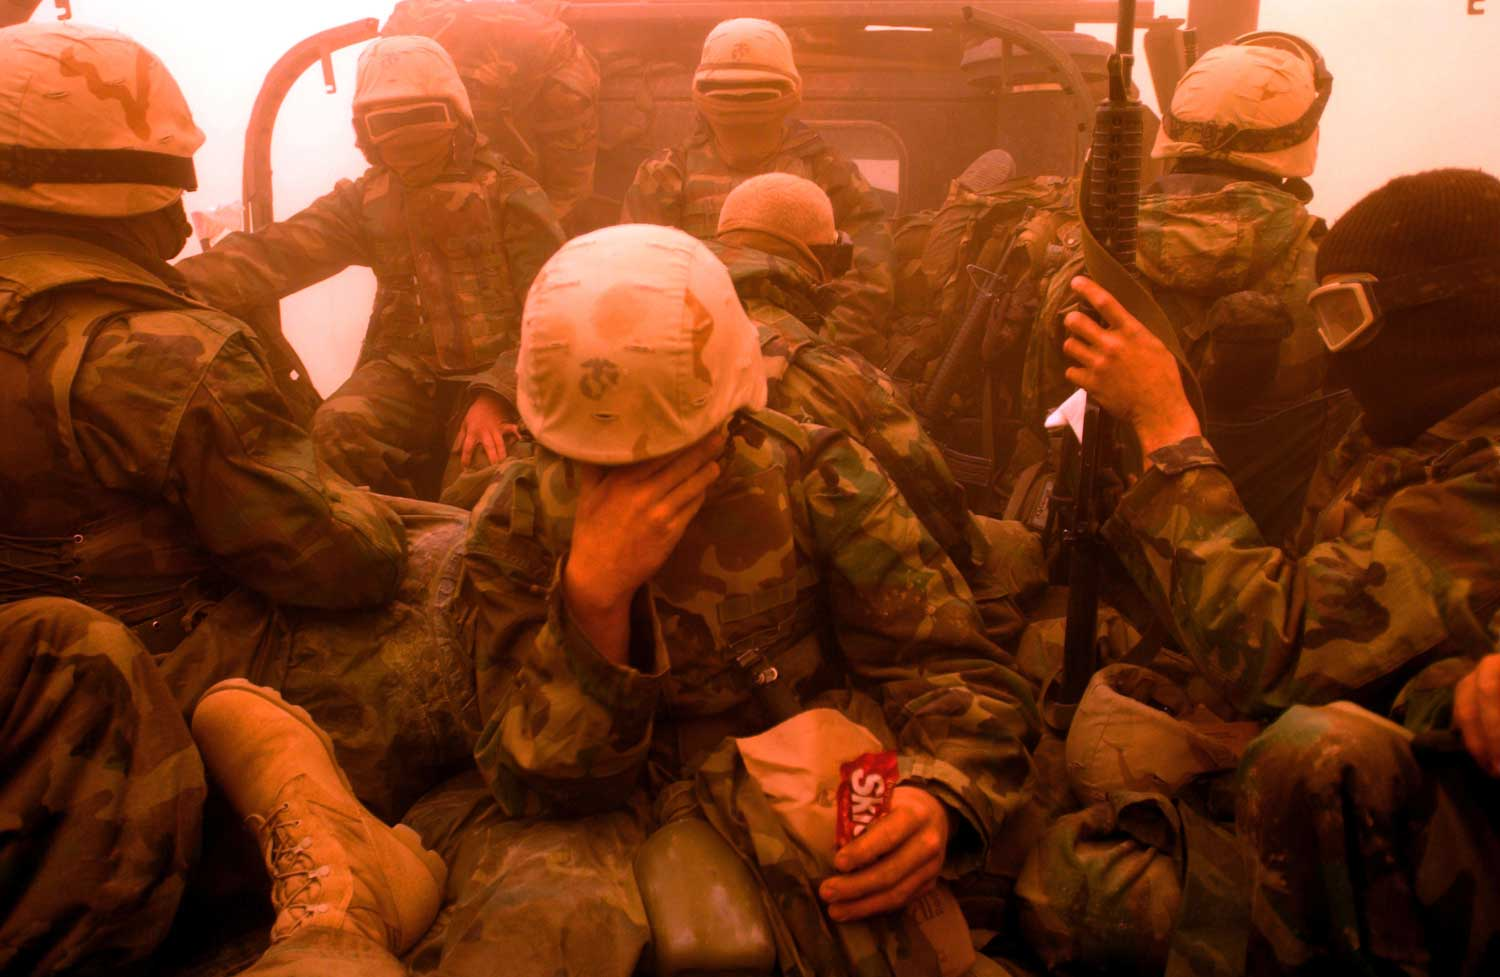 <b>James Hill, March 25, 2003                                   </b>                                   The only real resistance to the Allied invasion of Iraq in March 2003 turned out to be the weather, and in particular the sand storm that engulfed the troops for a full day in the middle of the desert about a week into the advance. Many of the Marines were stuck in open vehicles and they tried best to protect themselves from the biting wind laced with sand, all except this one Marine who steadfastly munched on his Skittles. A few years later this image was on the front of a book about the war and the Skittles had to be photoshopped out because of copyright violations for having the branded sweets on the cover! Looking back on that day I sense how the fog of the storm was also something of a metaphor for the whole campaign that even now it is hard to decide, even after the departure of American troops, what were the rights and wrongs and successes and failures of the campaign.